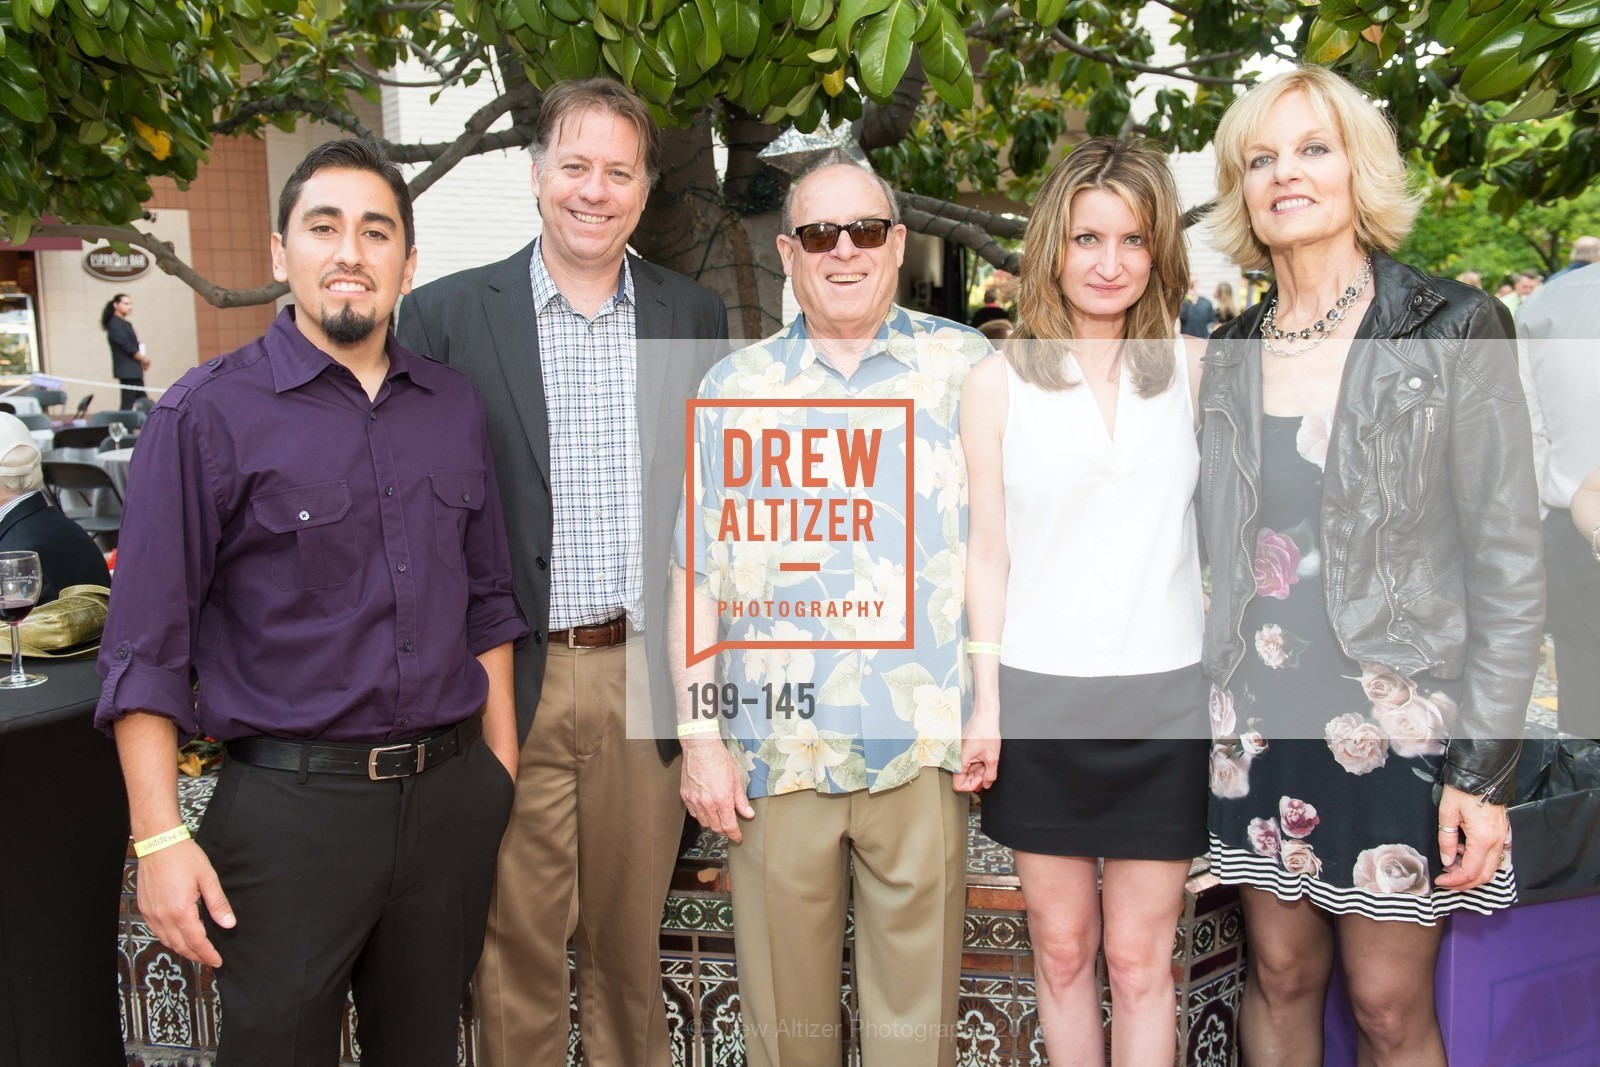 Andres Schmidt, Paul Moran, Bob Morrissey, Katya Obretenova, Lauren Swezey, DREAMS HAPPEN: Playhouse Auction and Gala, Stanford Shopping Center, June 5th, 2015,Drew Altizer, Drew Altizer Photography, full-service event agency, private events, San Francisco photographer, photographer California